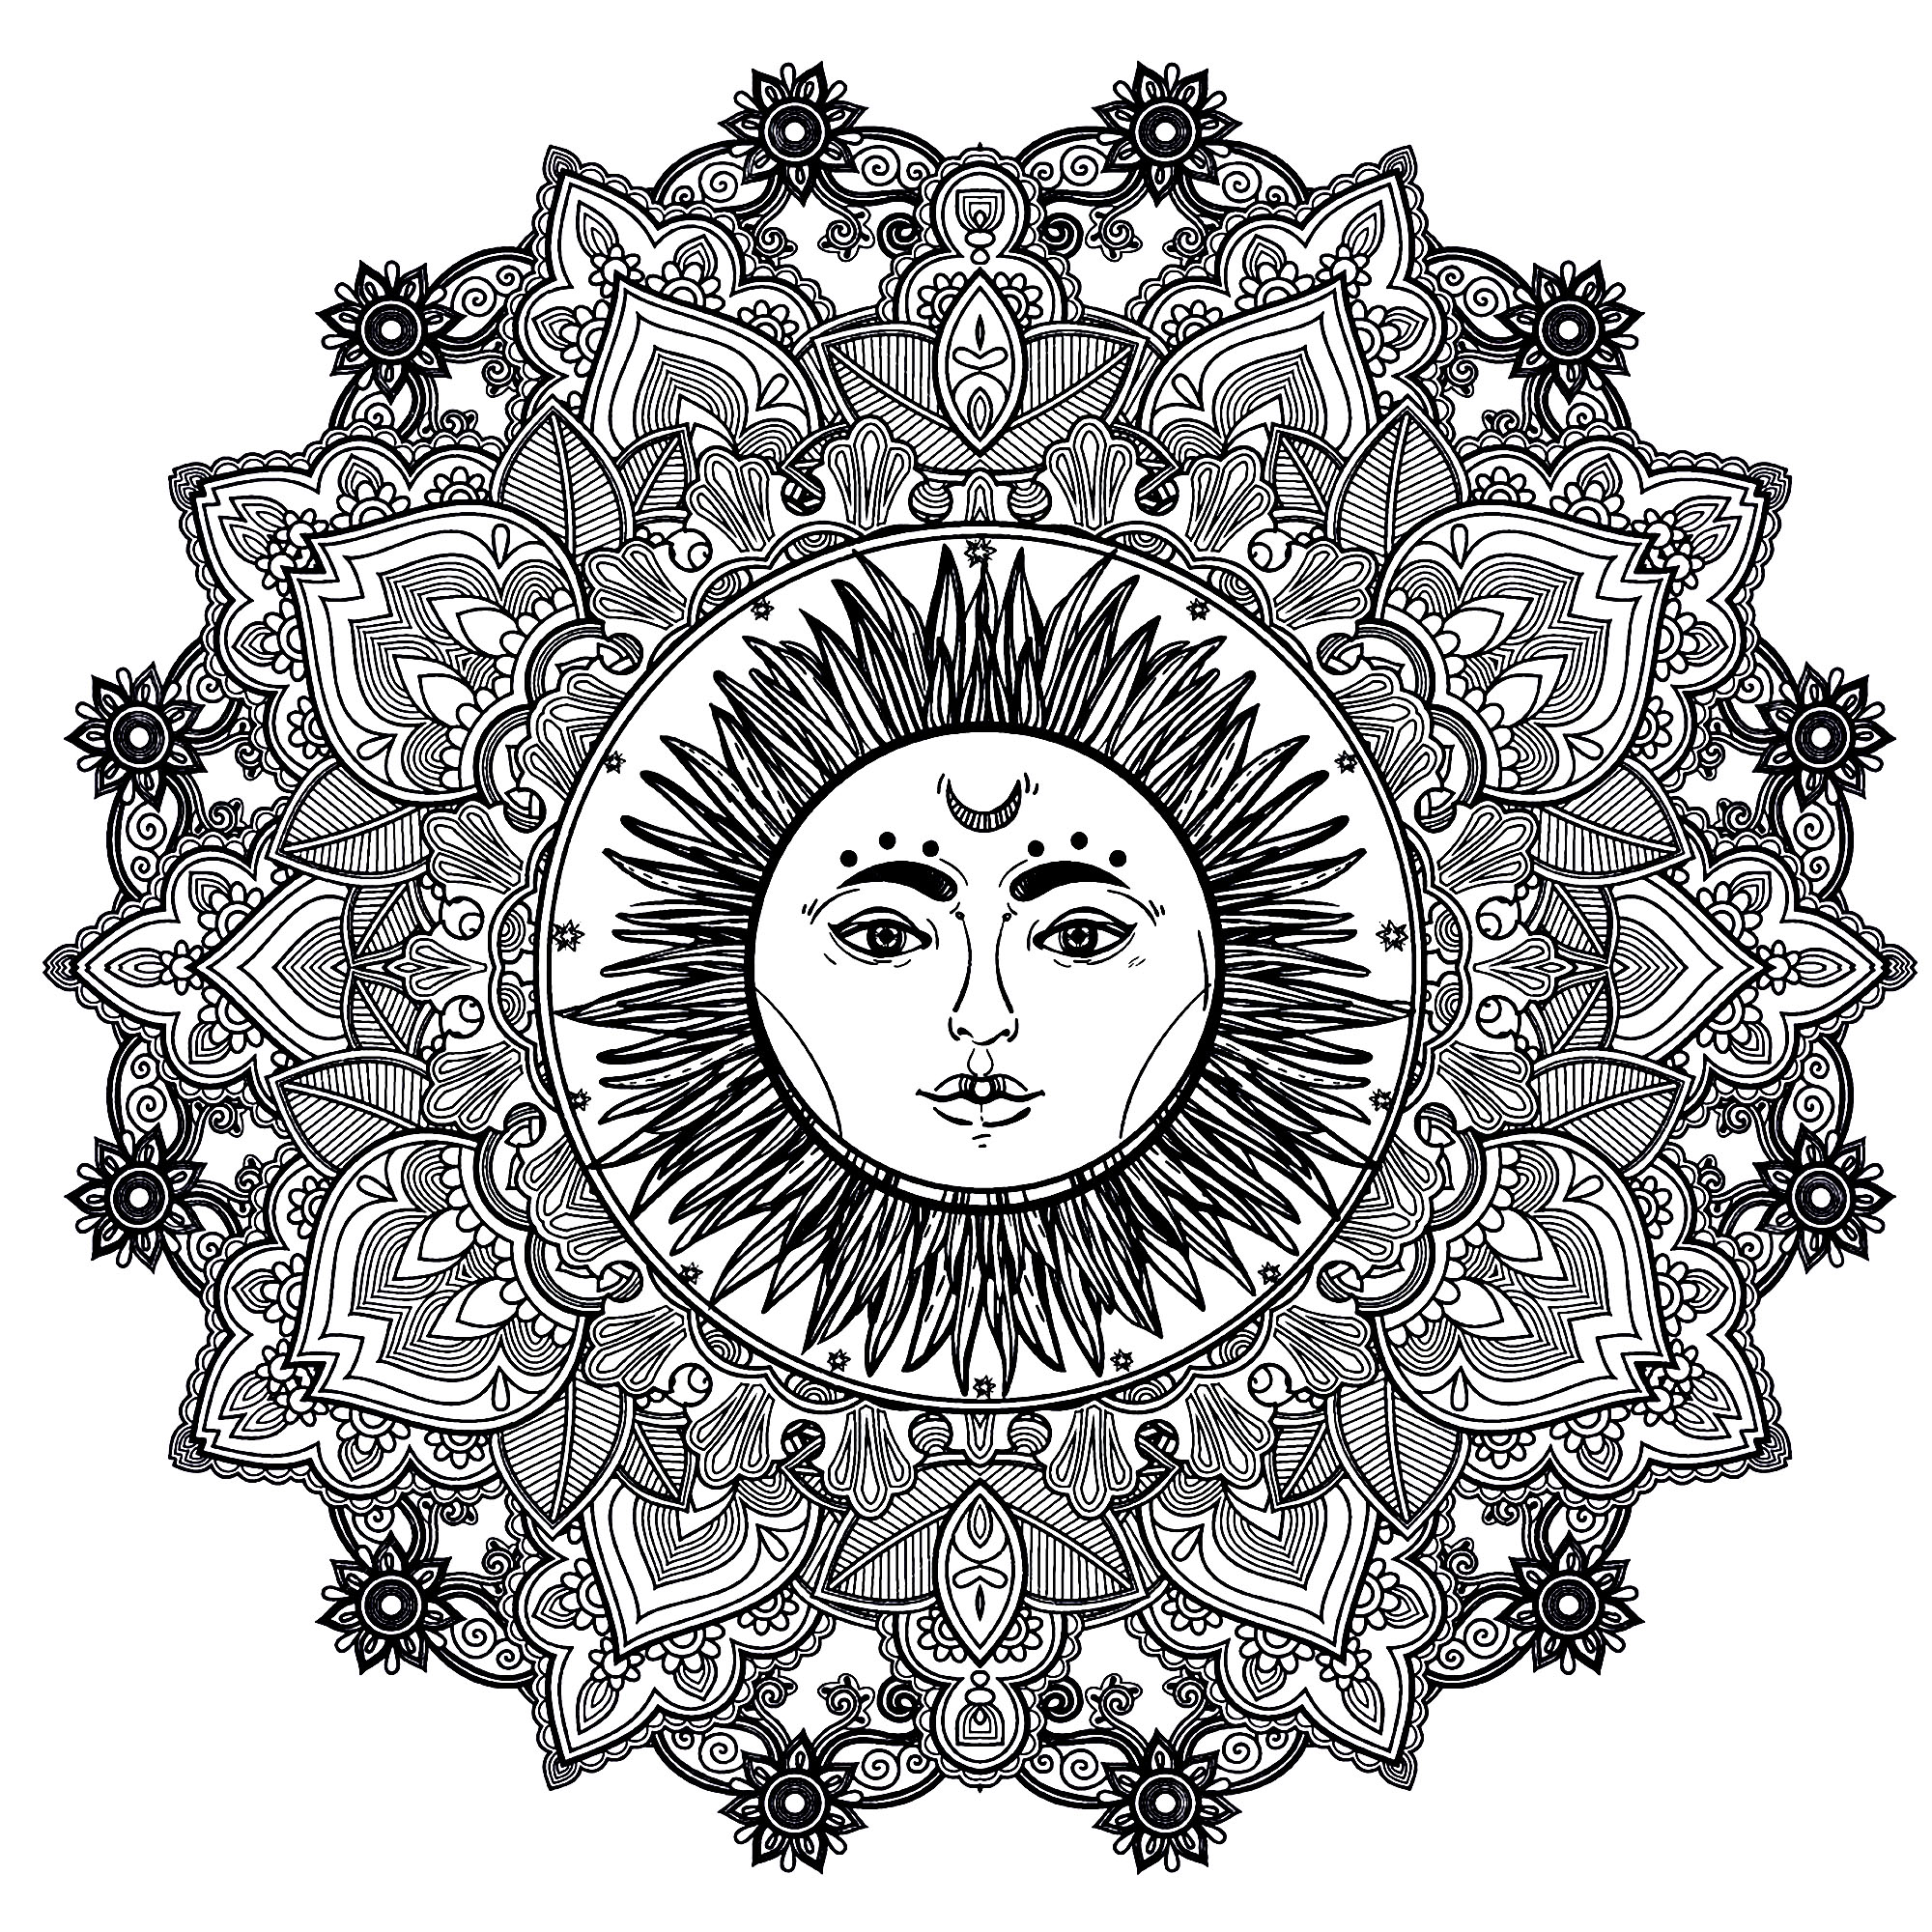 Mandala to color, with beautiful sun in center